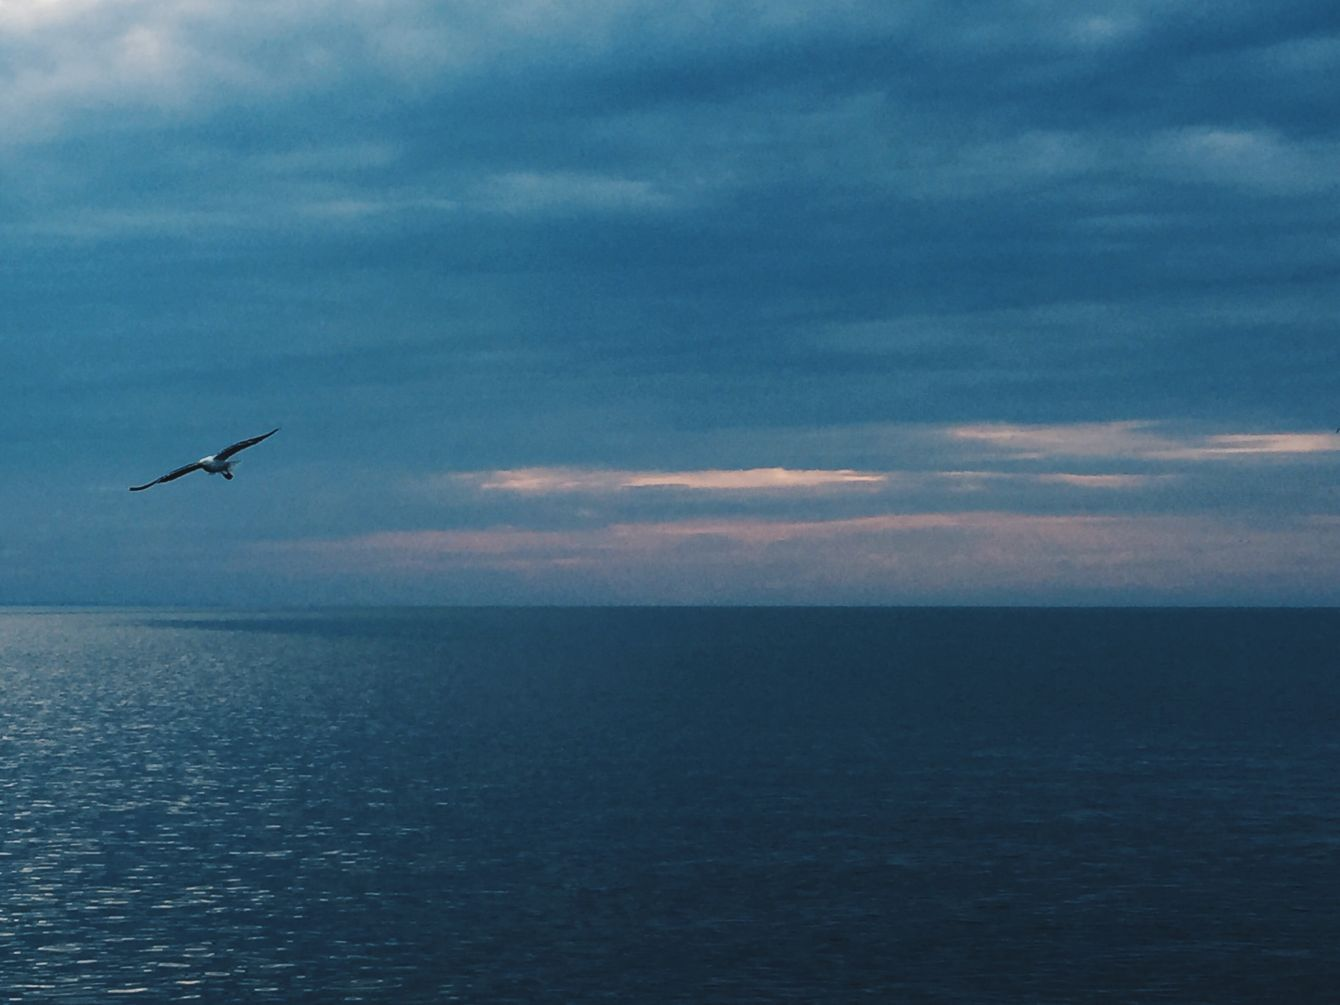 Click thumbnail to see details about photo - Prince Edward Island Stock Photo Bird Flying Stock Photo